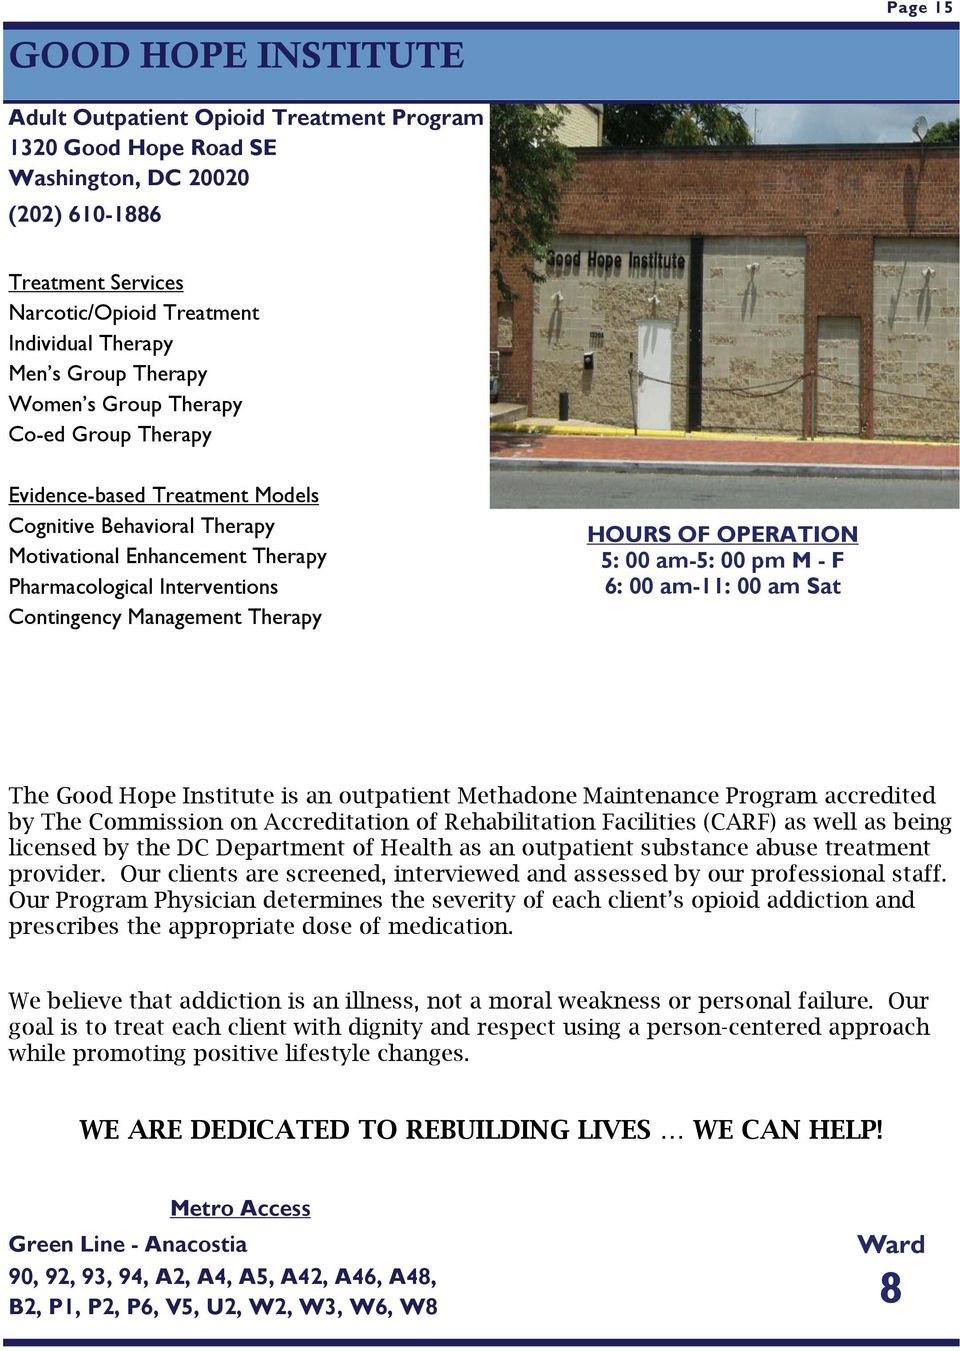 00 am Sat The Good Hope Institute is an outpatient Methadone Maintenance Program accredited by The Commission on Accreditation of Rehabilitation Facilities (CARF) as well as being licensed by the DC